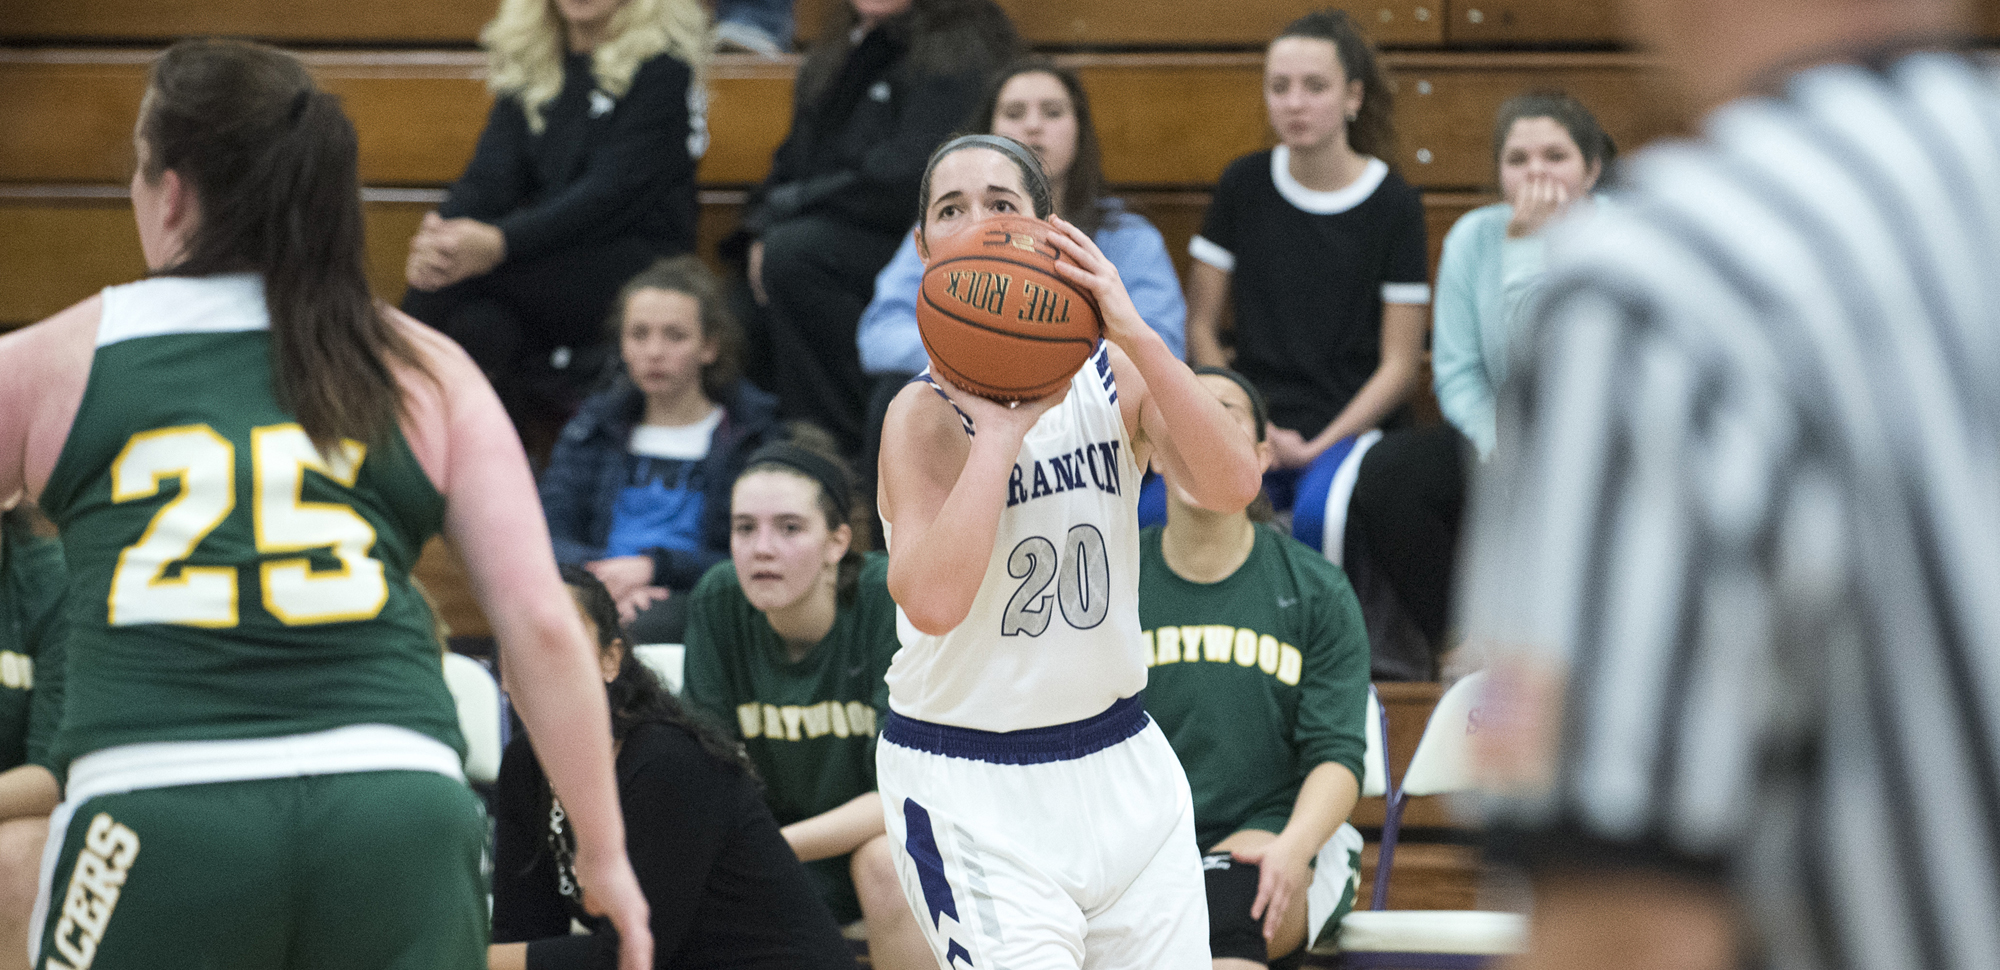 Senior Katie Broderick hit four 3-pointers in the third quarter as the Lady Royals pulled away to defeat Wheaton on Friday.